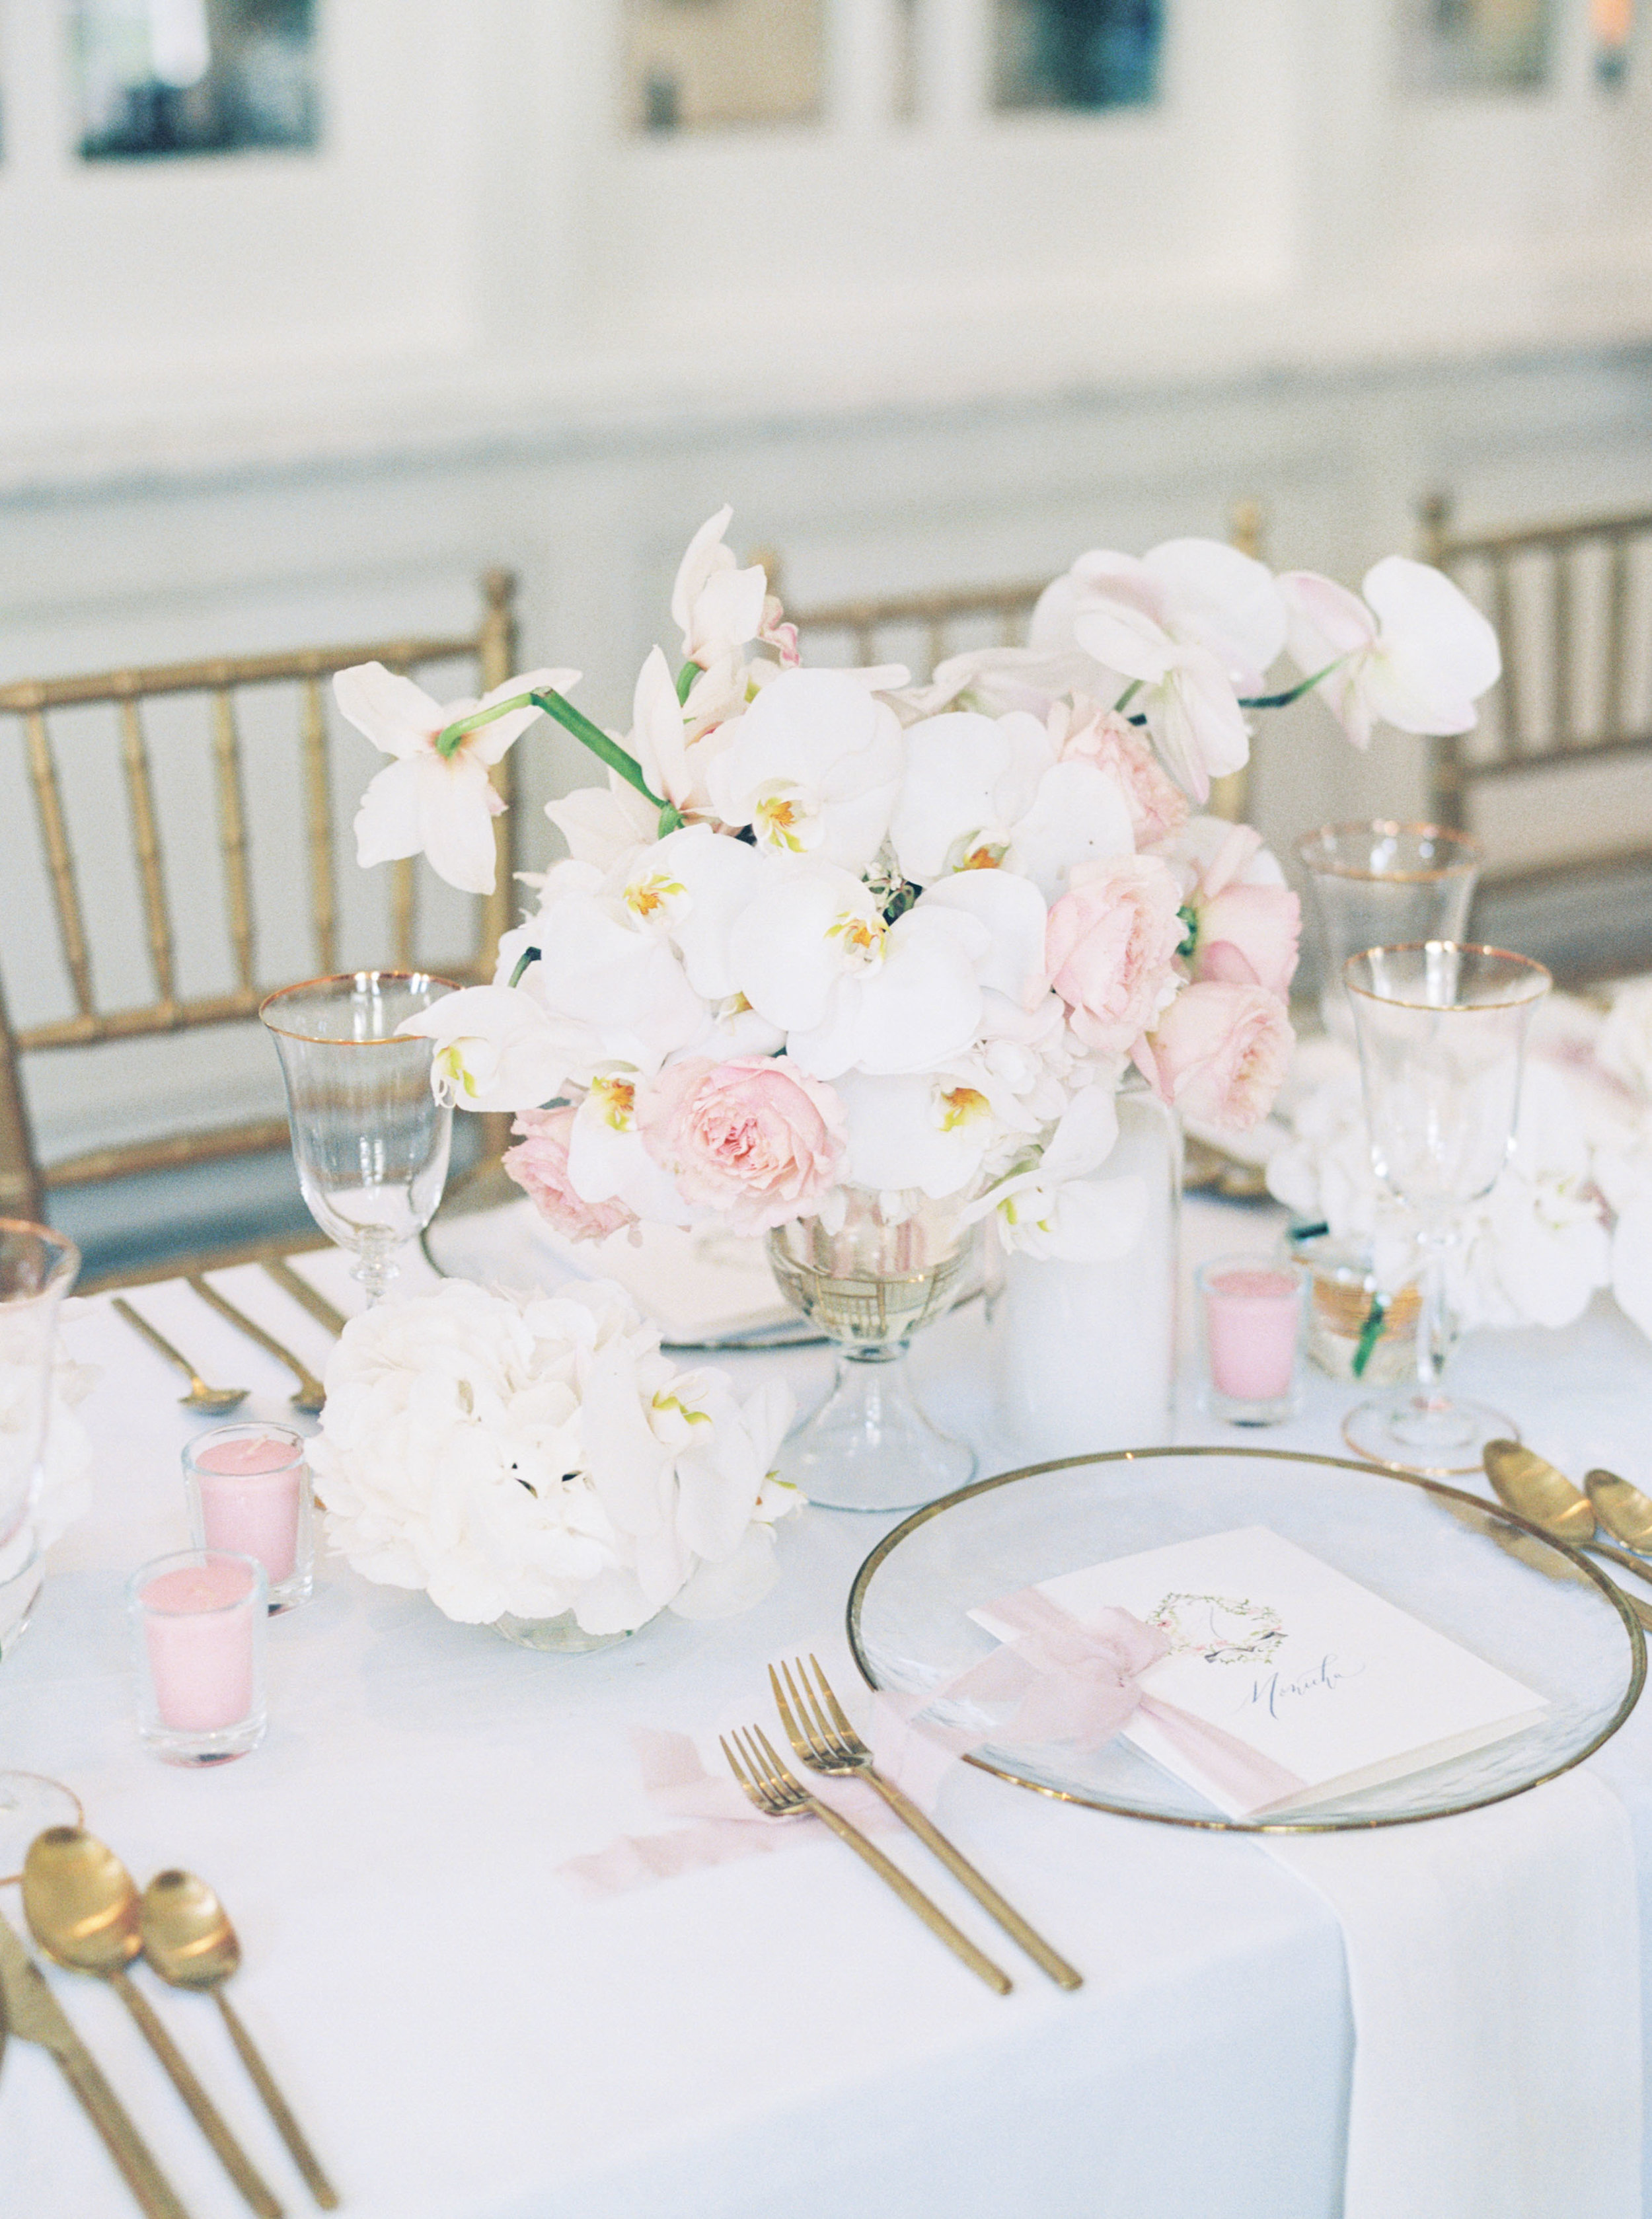 Jakarta-Elegant White Blush Baby Shower-Dimitri Events-Studio June Film Photography & Styling-4.jpg